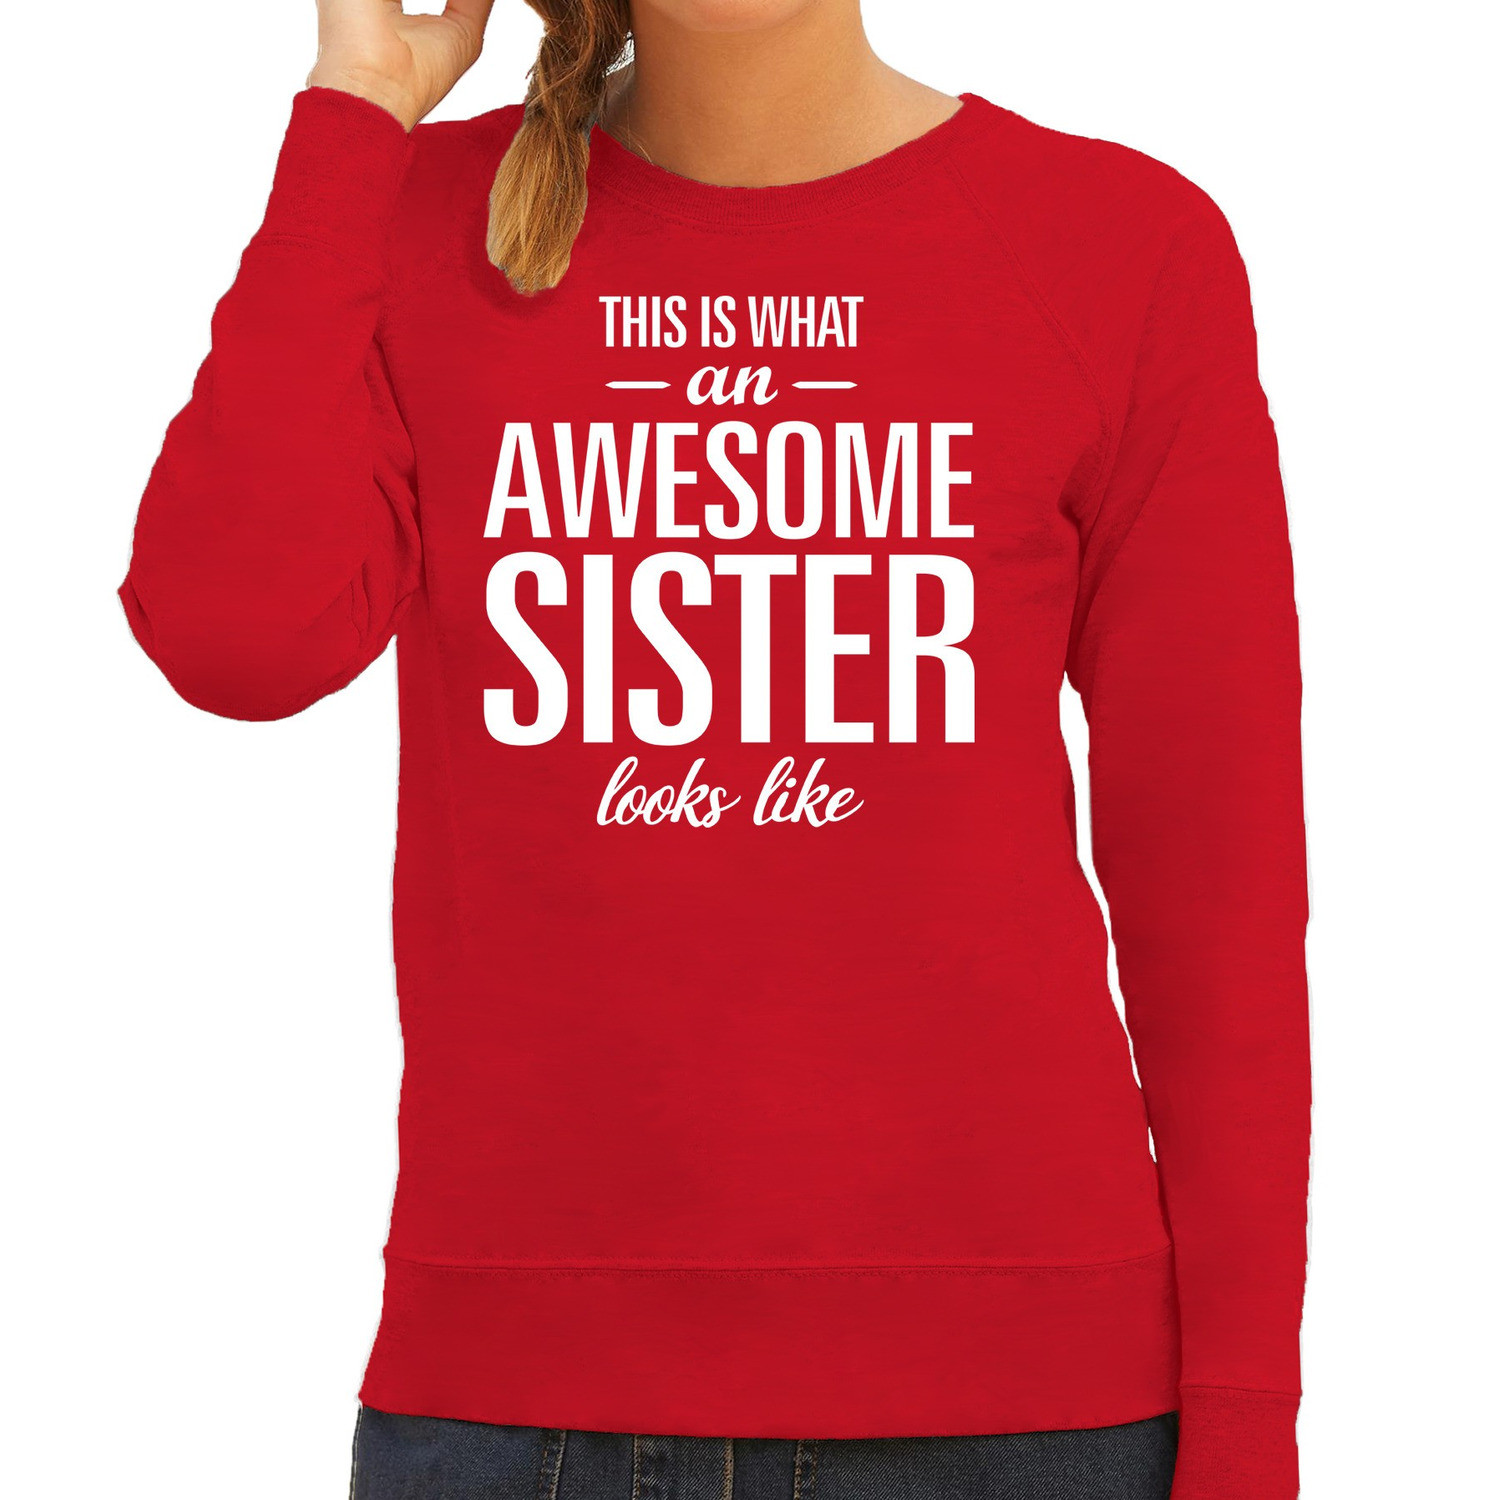 Awesome sister - zus cadeau trui rood dames